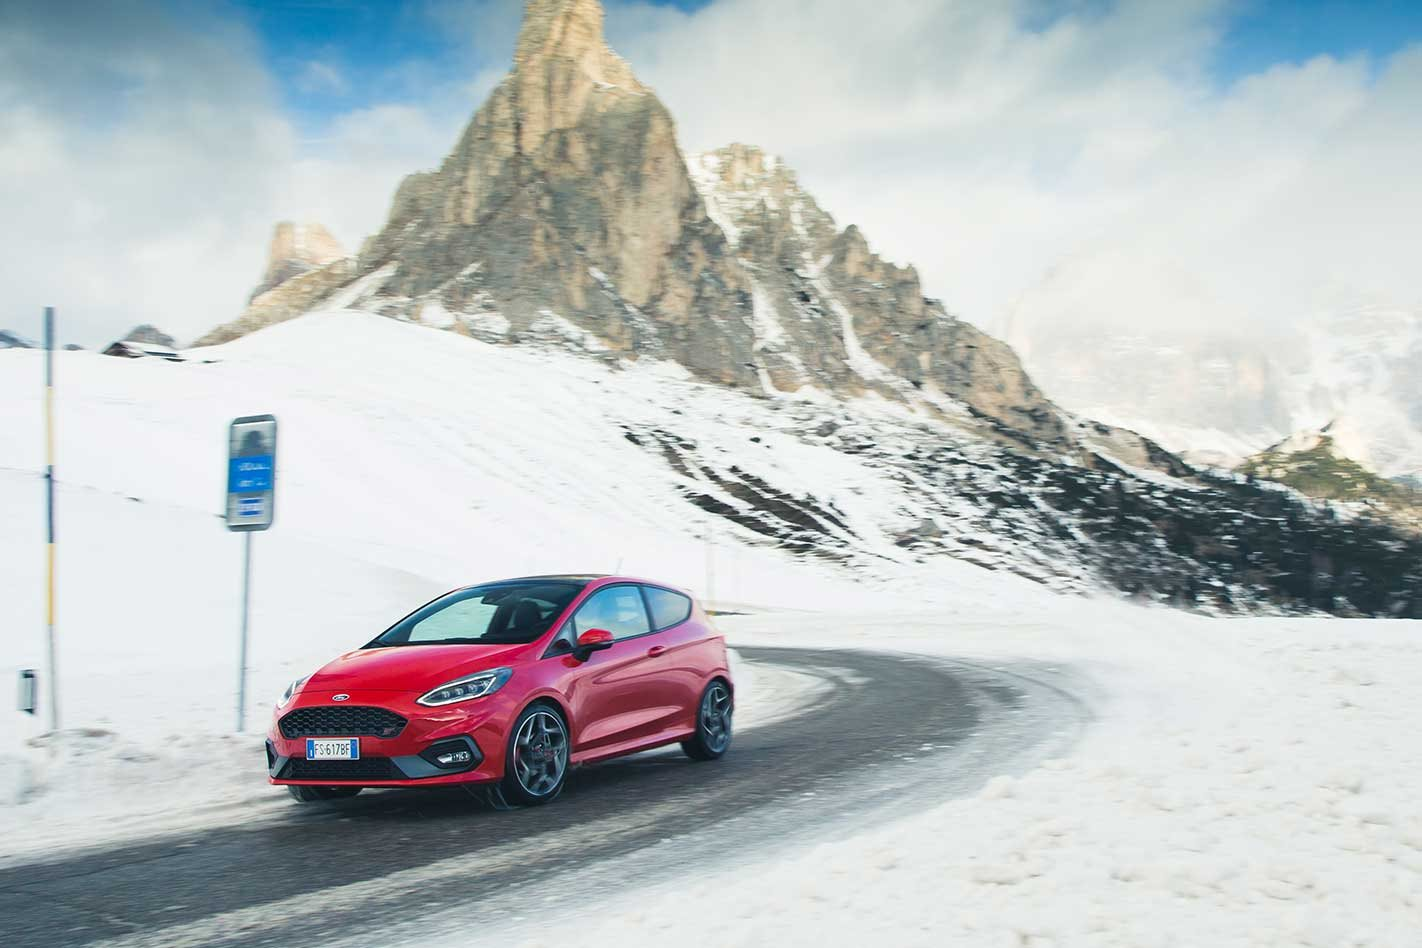 2019 Ford Fiesta ST takes on the Alps